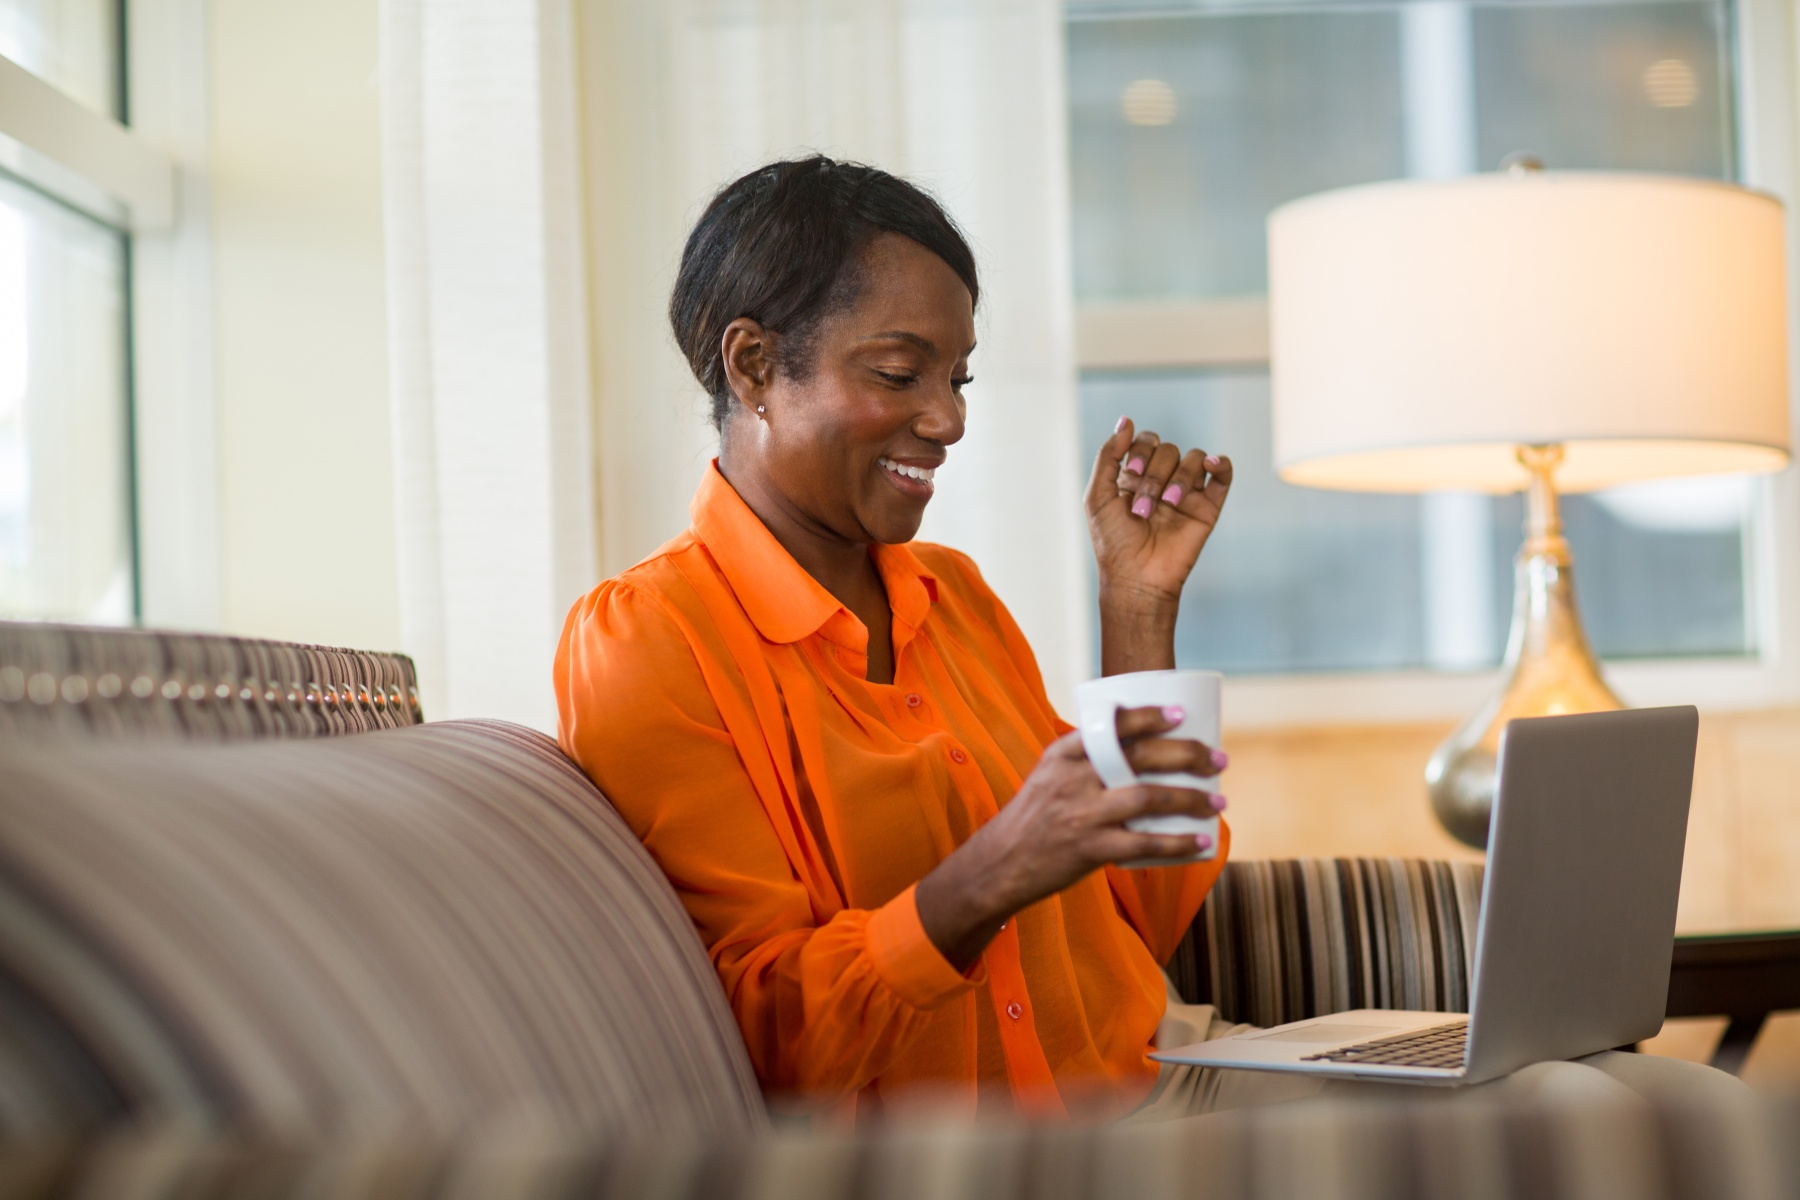 Smiling woman on her laptop working from home.